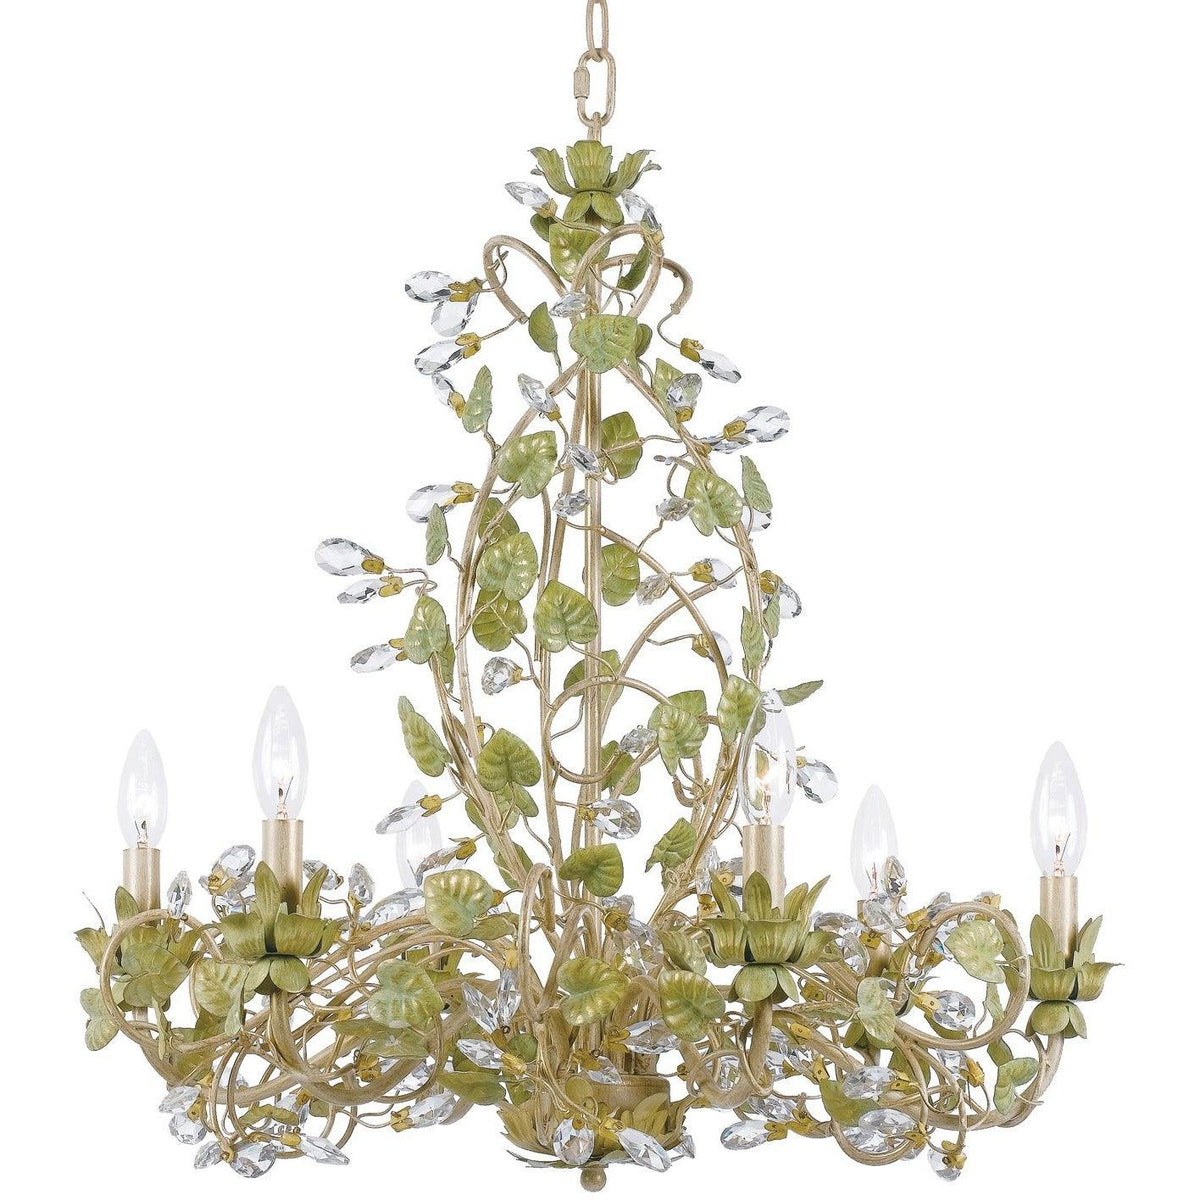 Crystorama - 4846-CT - Six Light Chandelier - Josie - Champagne Green Tea